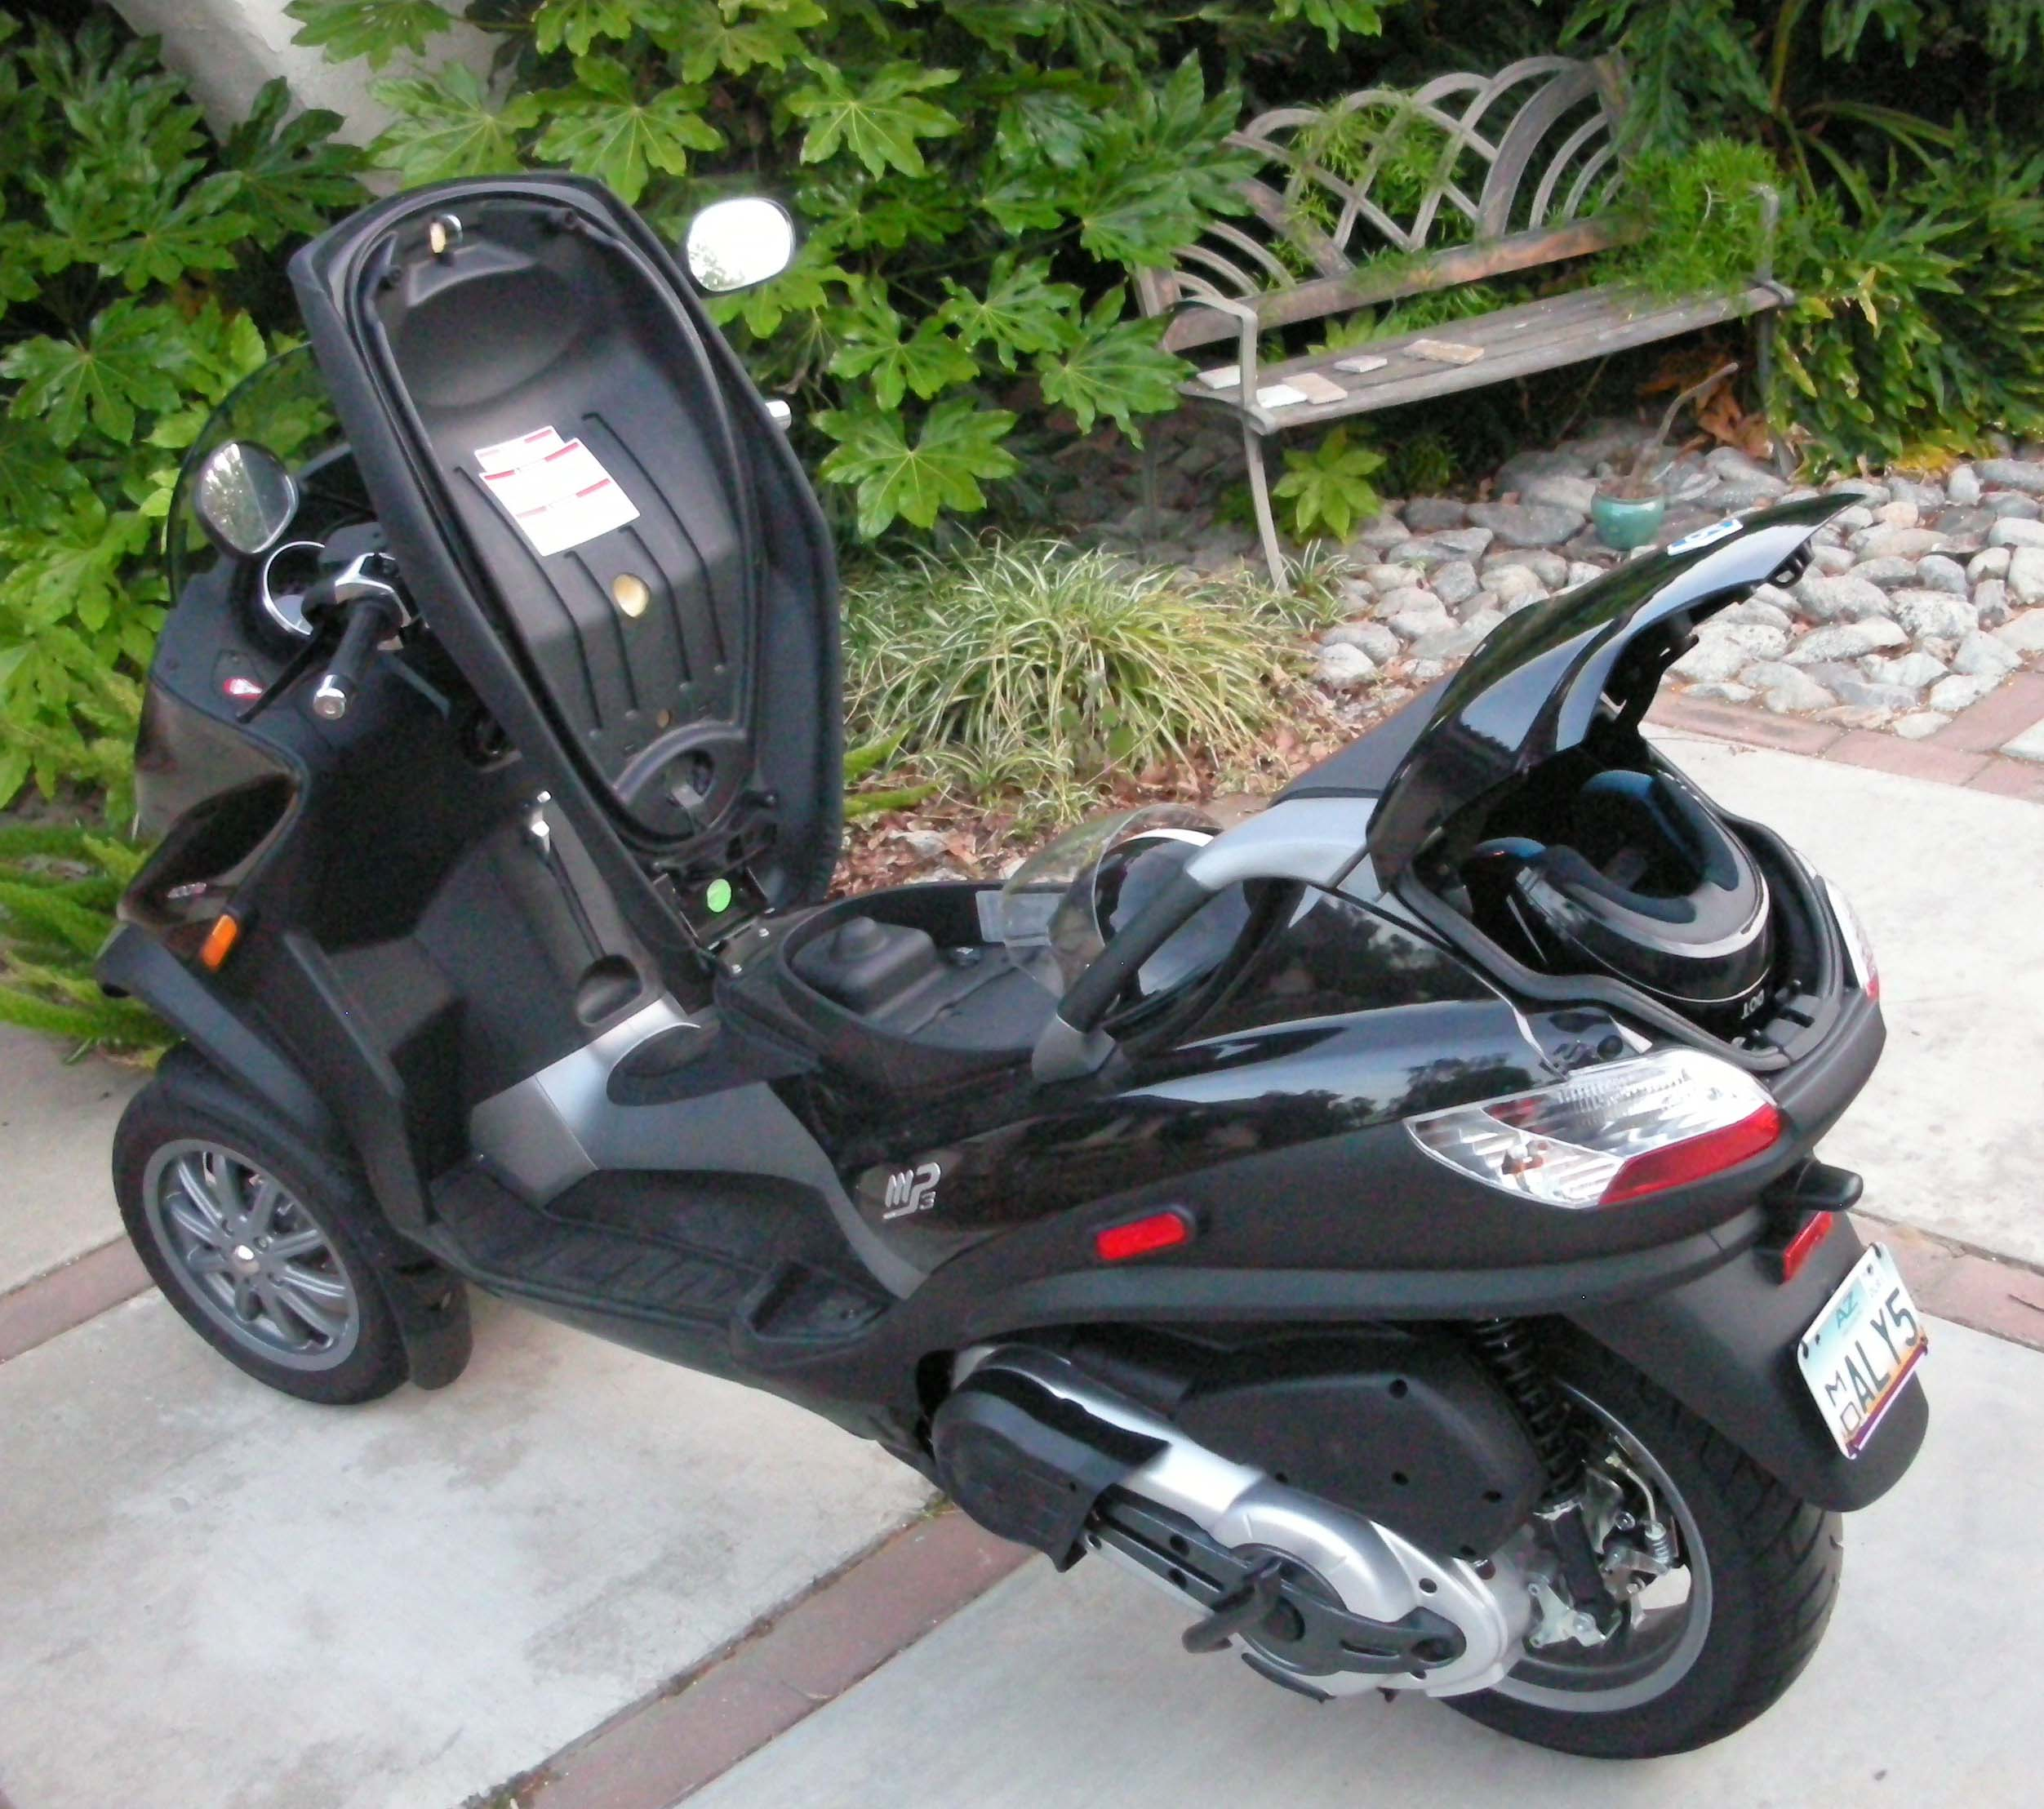 Piaggio MP3 400 images #120056